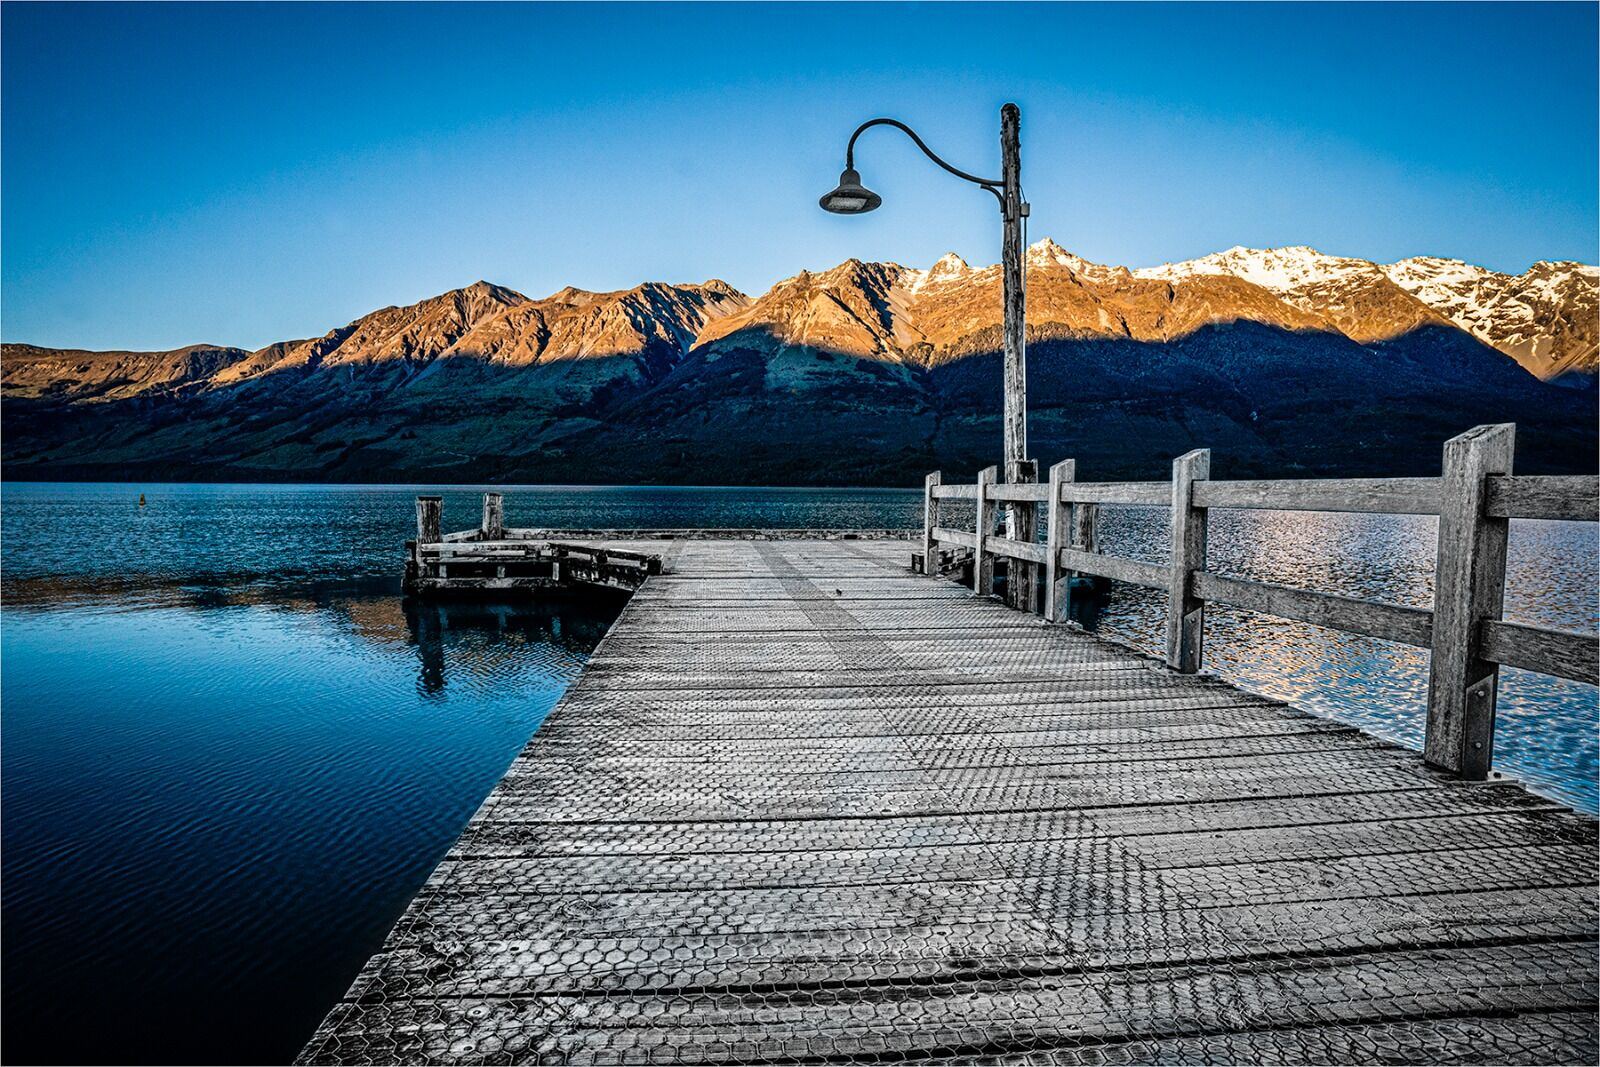 THE EARLY MORNING LIGHT, GLENORCHY